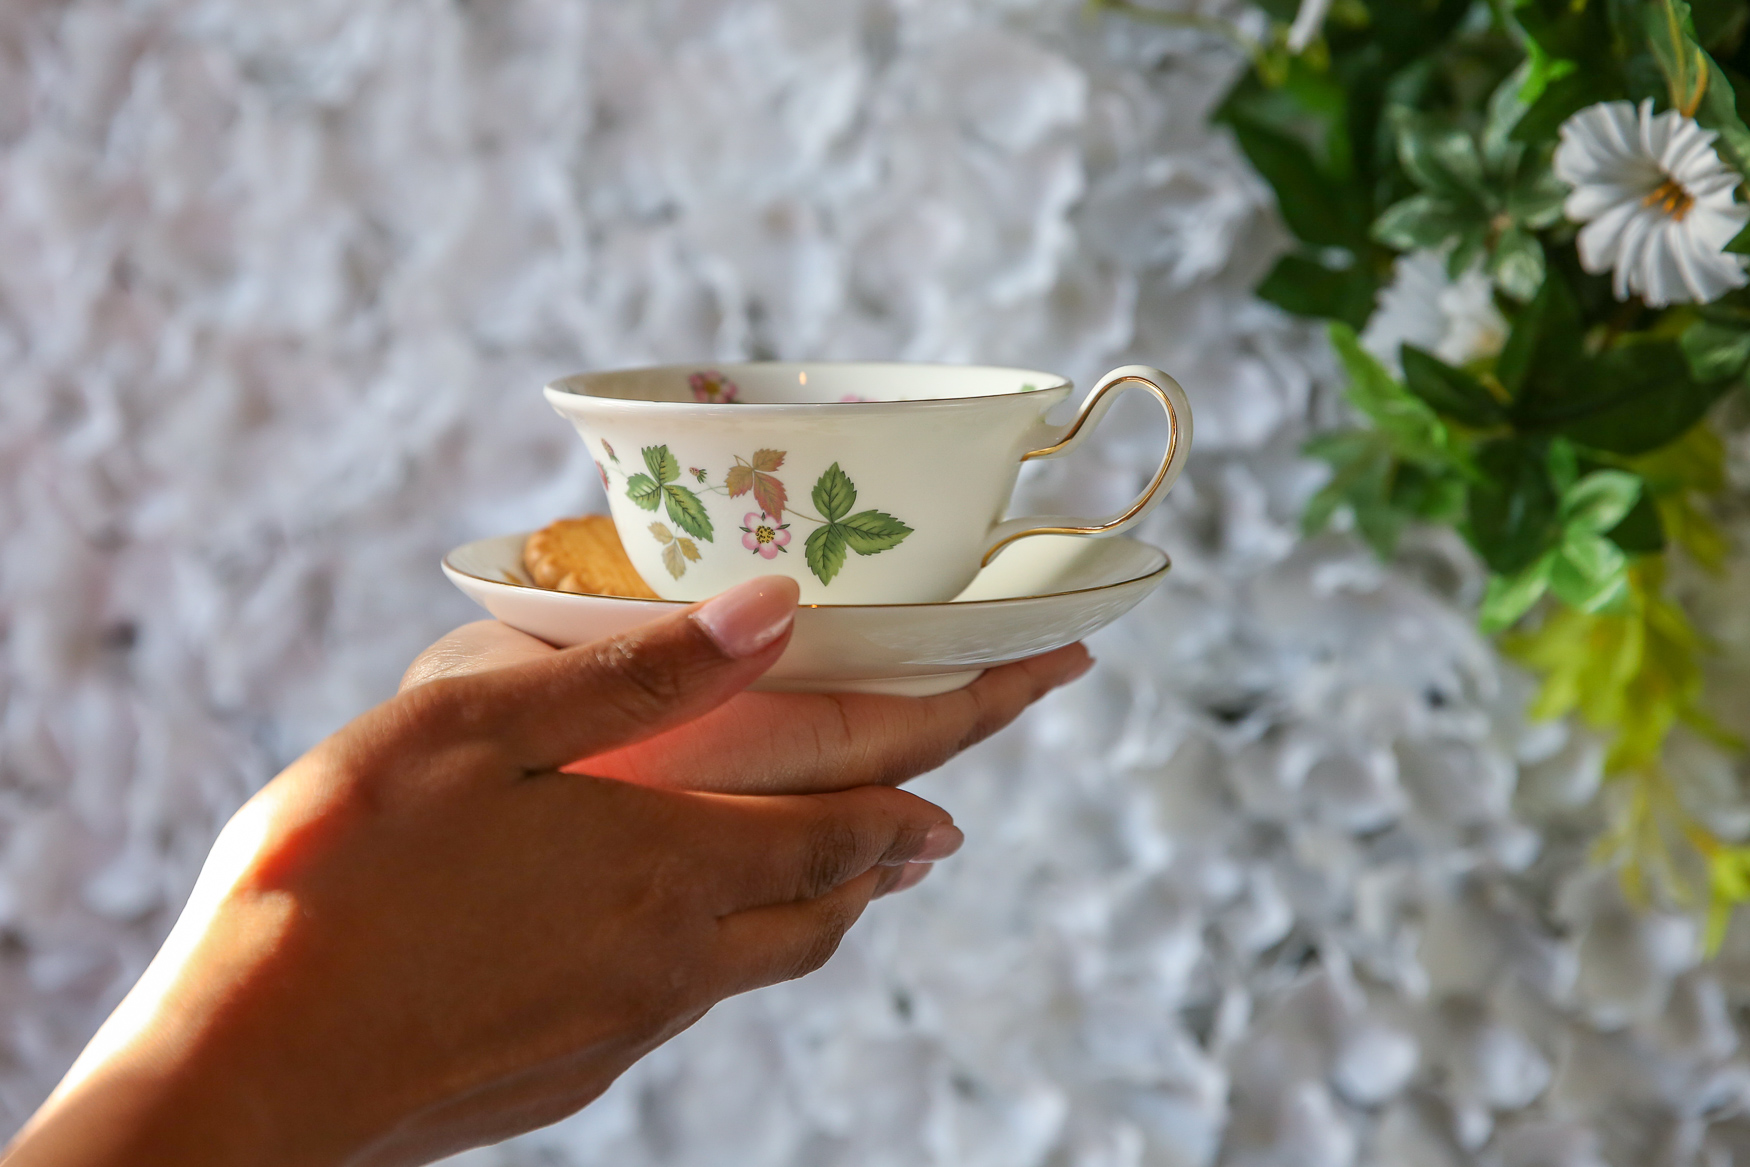 The Strawberry Cuppa may look delicate, but it's a scotch based and packs a punch.{ }(Amanda Andrade-Rhoades/DC Refined)